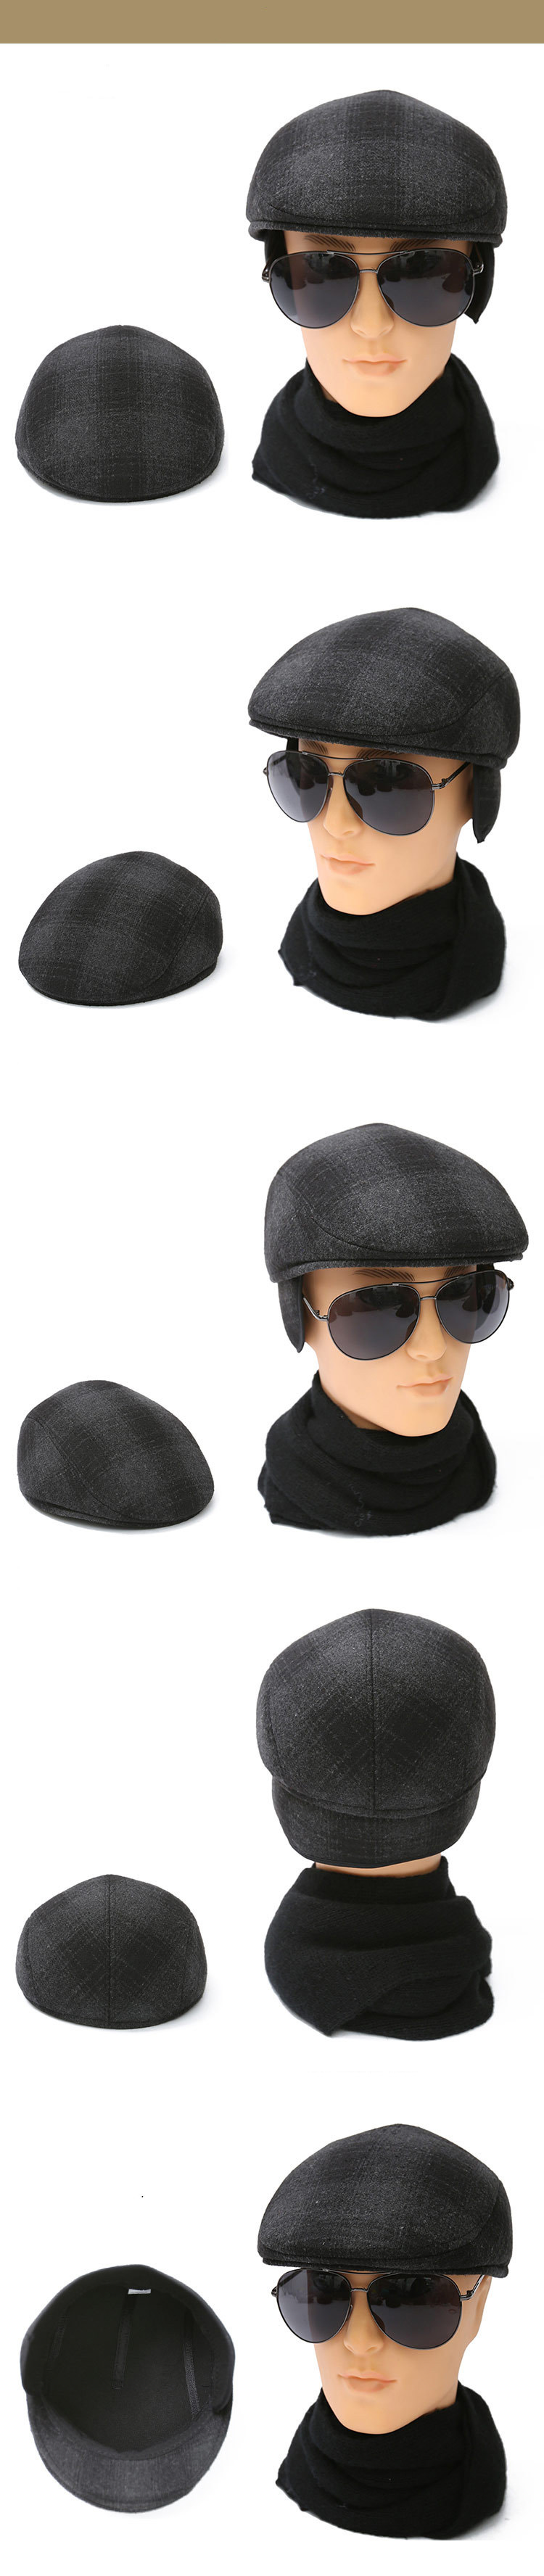 3608e6c6 Fibonacci Middle aged and old man vintage flat cap knitted ear protection  beret plus velvet hat newsboy cap